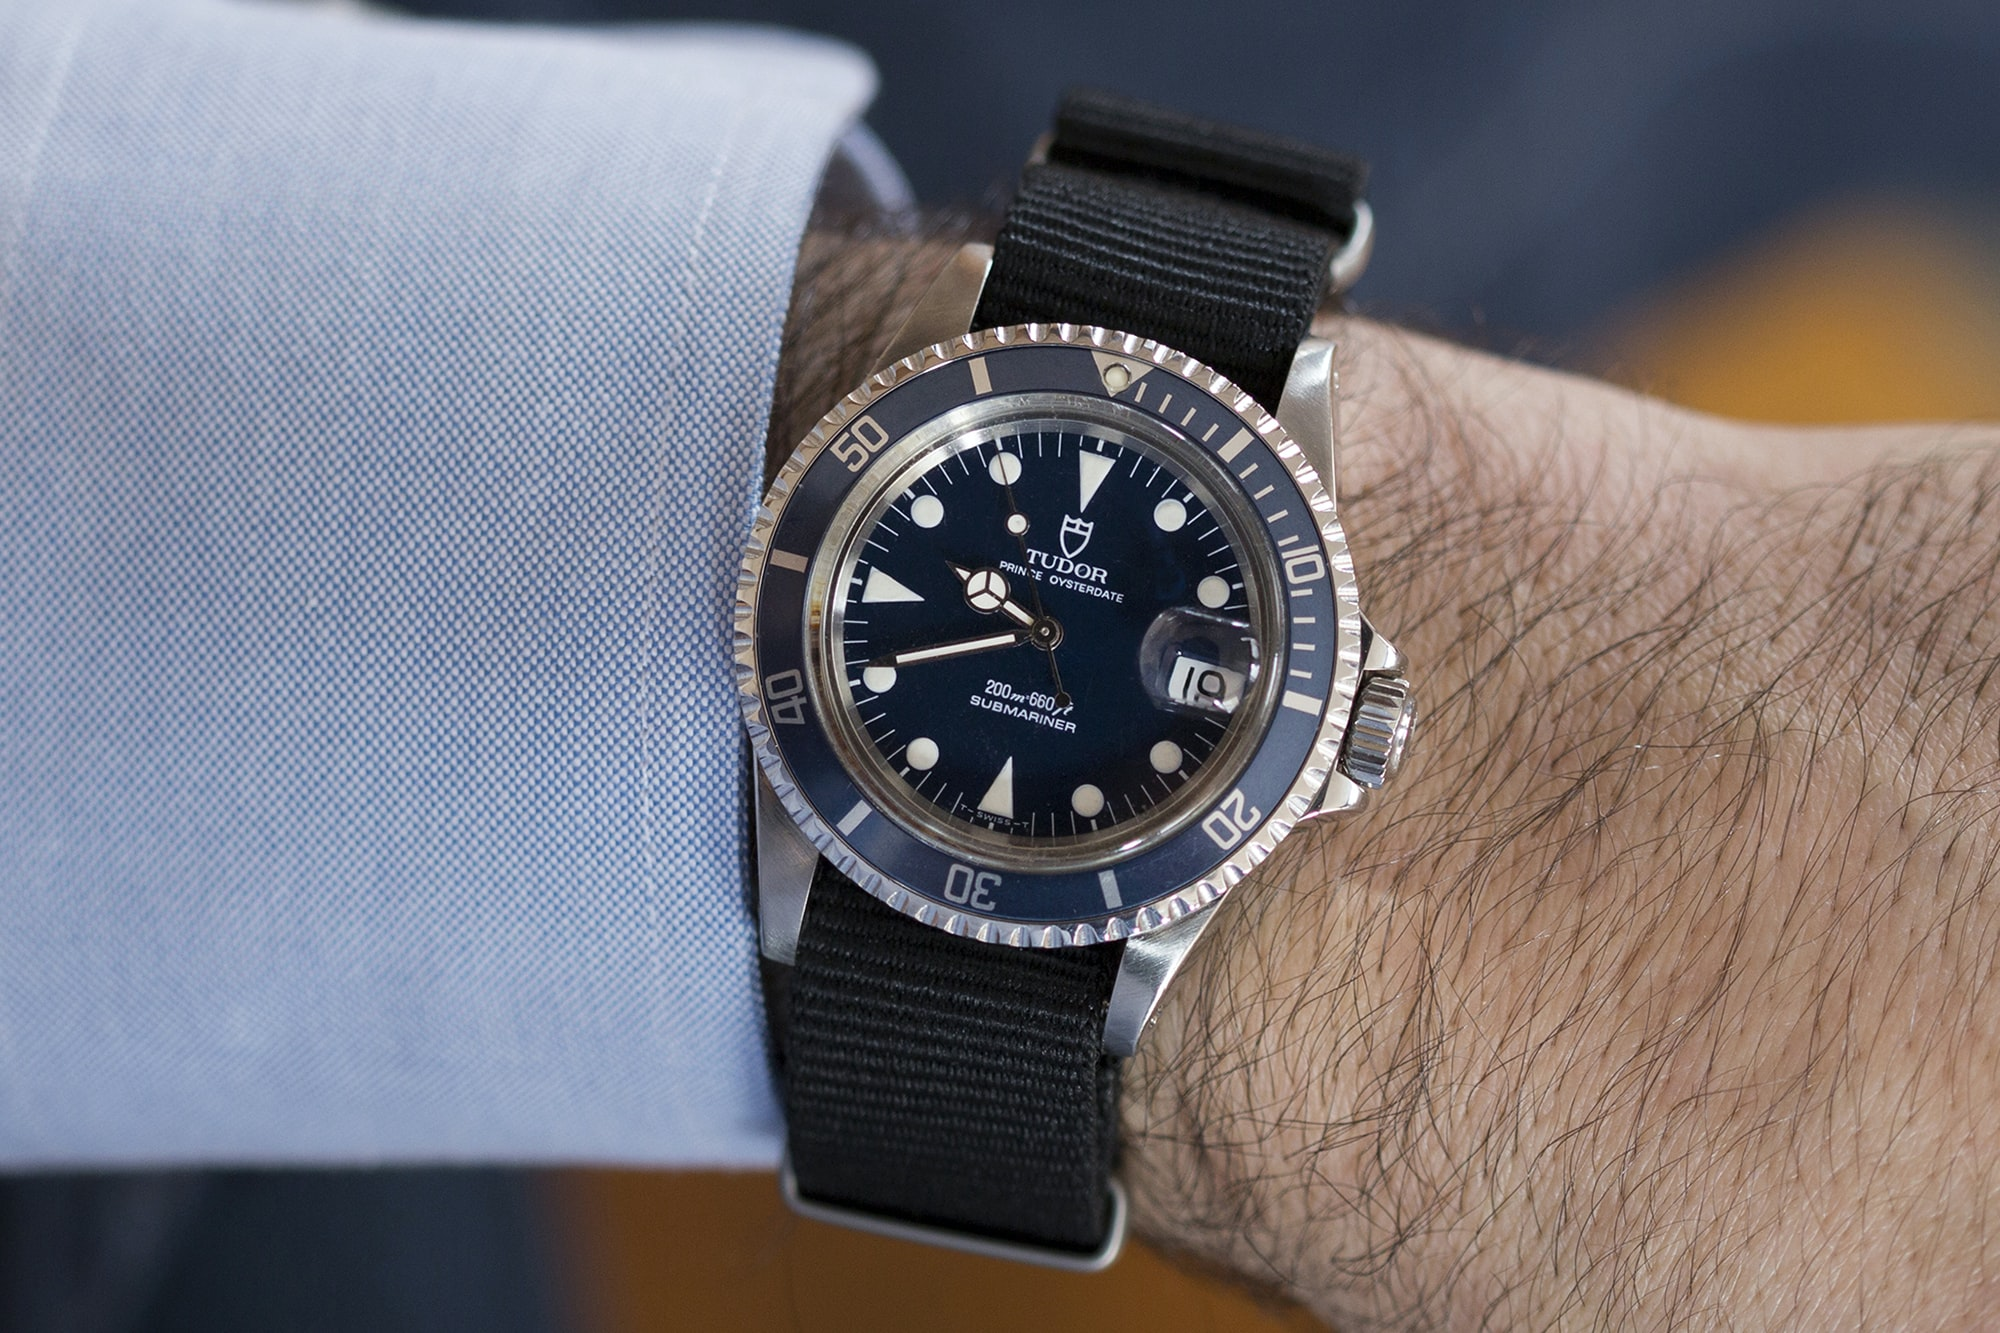 Tudor Submariner Reference 79090 Blue In The Shop: A 1990 Tudor Submariner Reference 79090 Blue, A 1979 Rolex GMT-Master Reference 1675, And A 1966 Breitling Navitimer In The Shop: A 1990 Tudor Submariner Reference 79090 Blue, A 1979 Rolex GMT-Master Reference 1675, And A 1966 Breitling Navitimer 20015386 copy